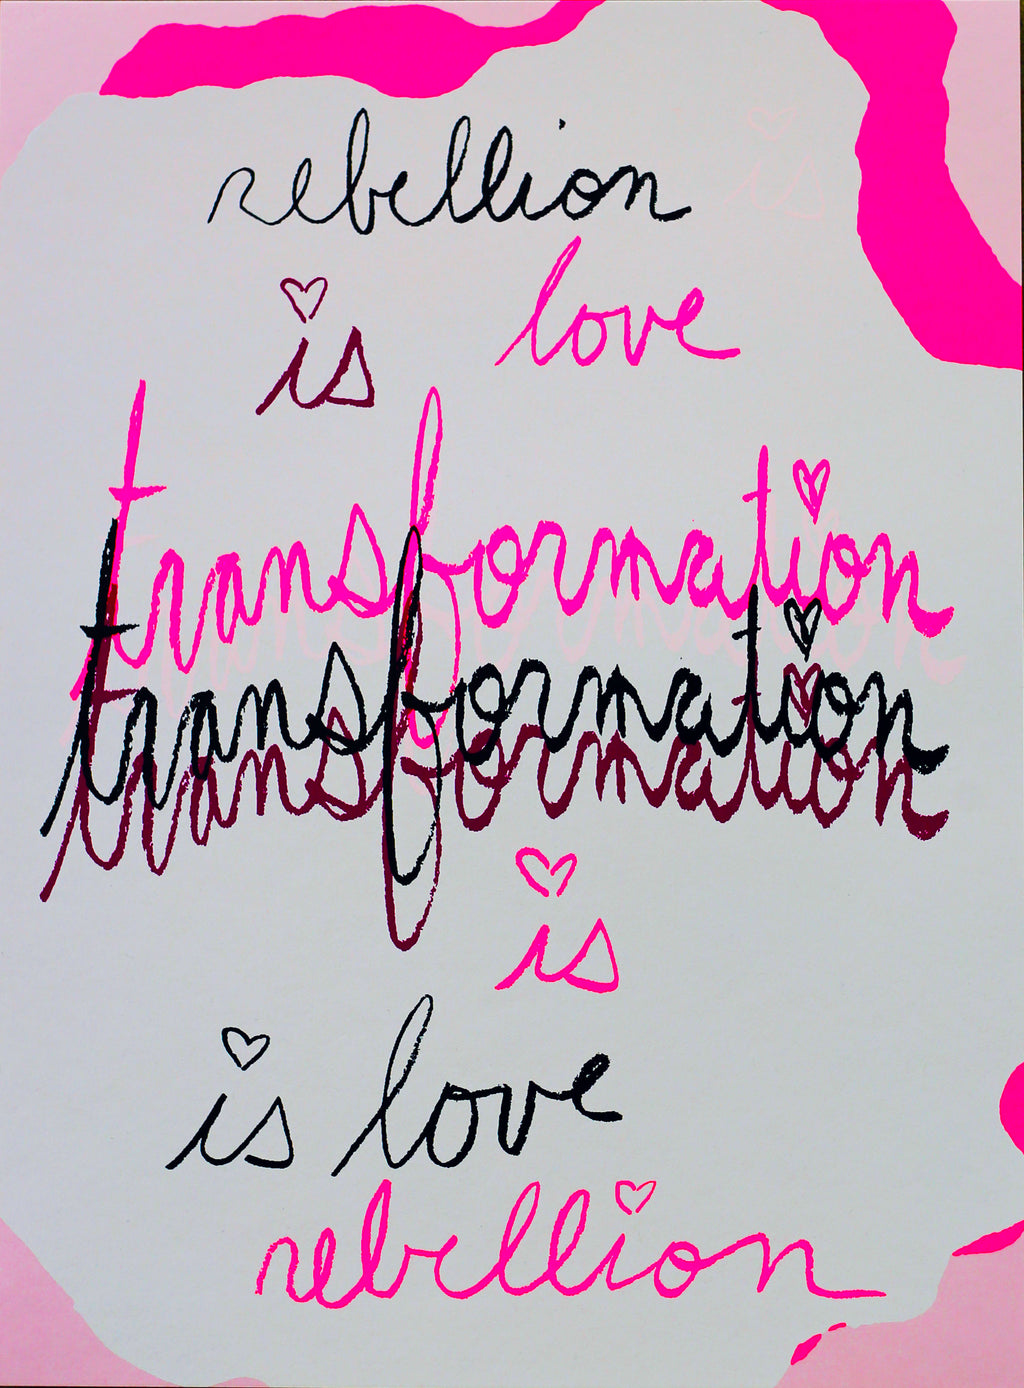 Rebellion Is Love Is Transformation Is Love Is Rebellion - 12x16 Limited Edition Print